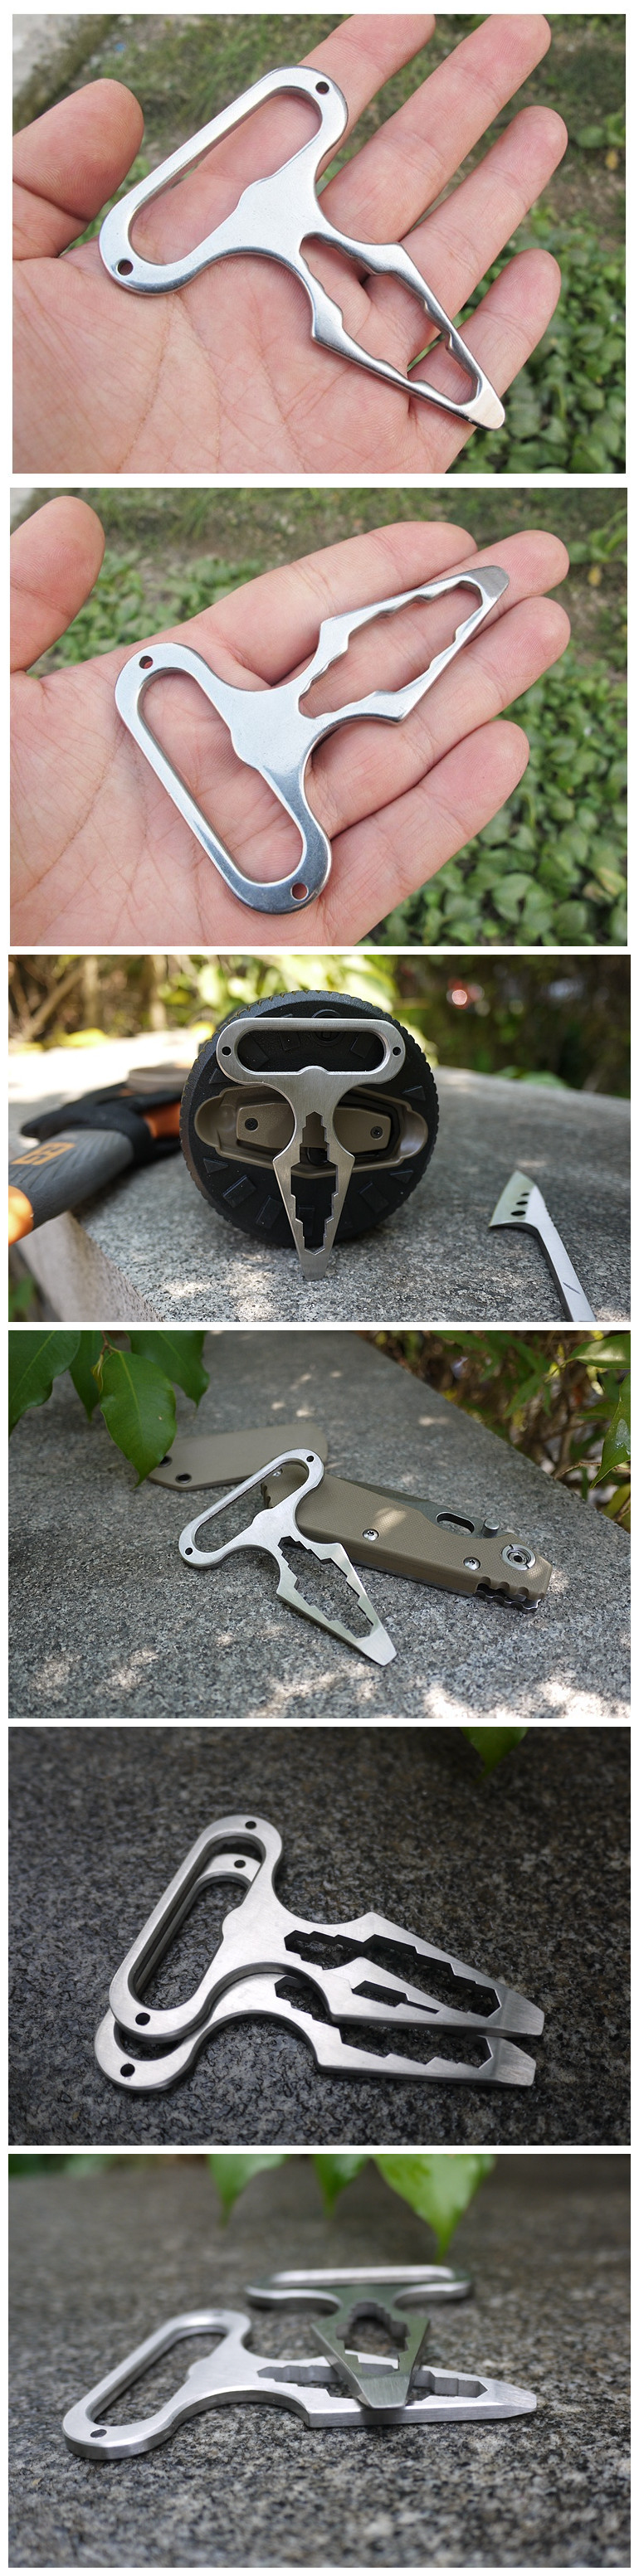 Outdooors EDC Wrench Tool Portable Pocket Tool Multifunctions Screwdriver Bottle Opener Survival Gear